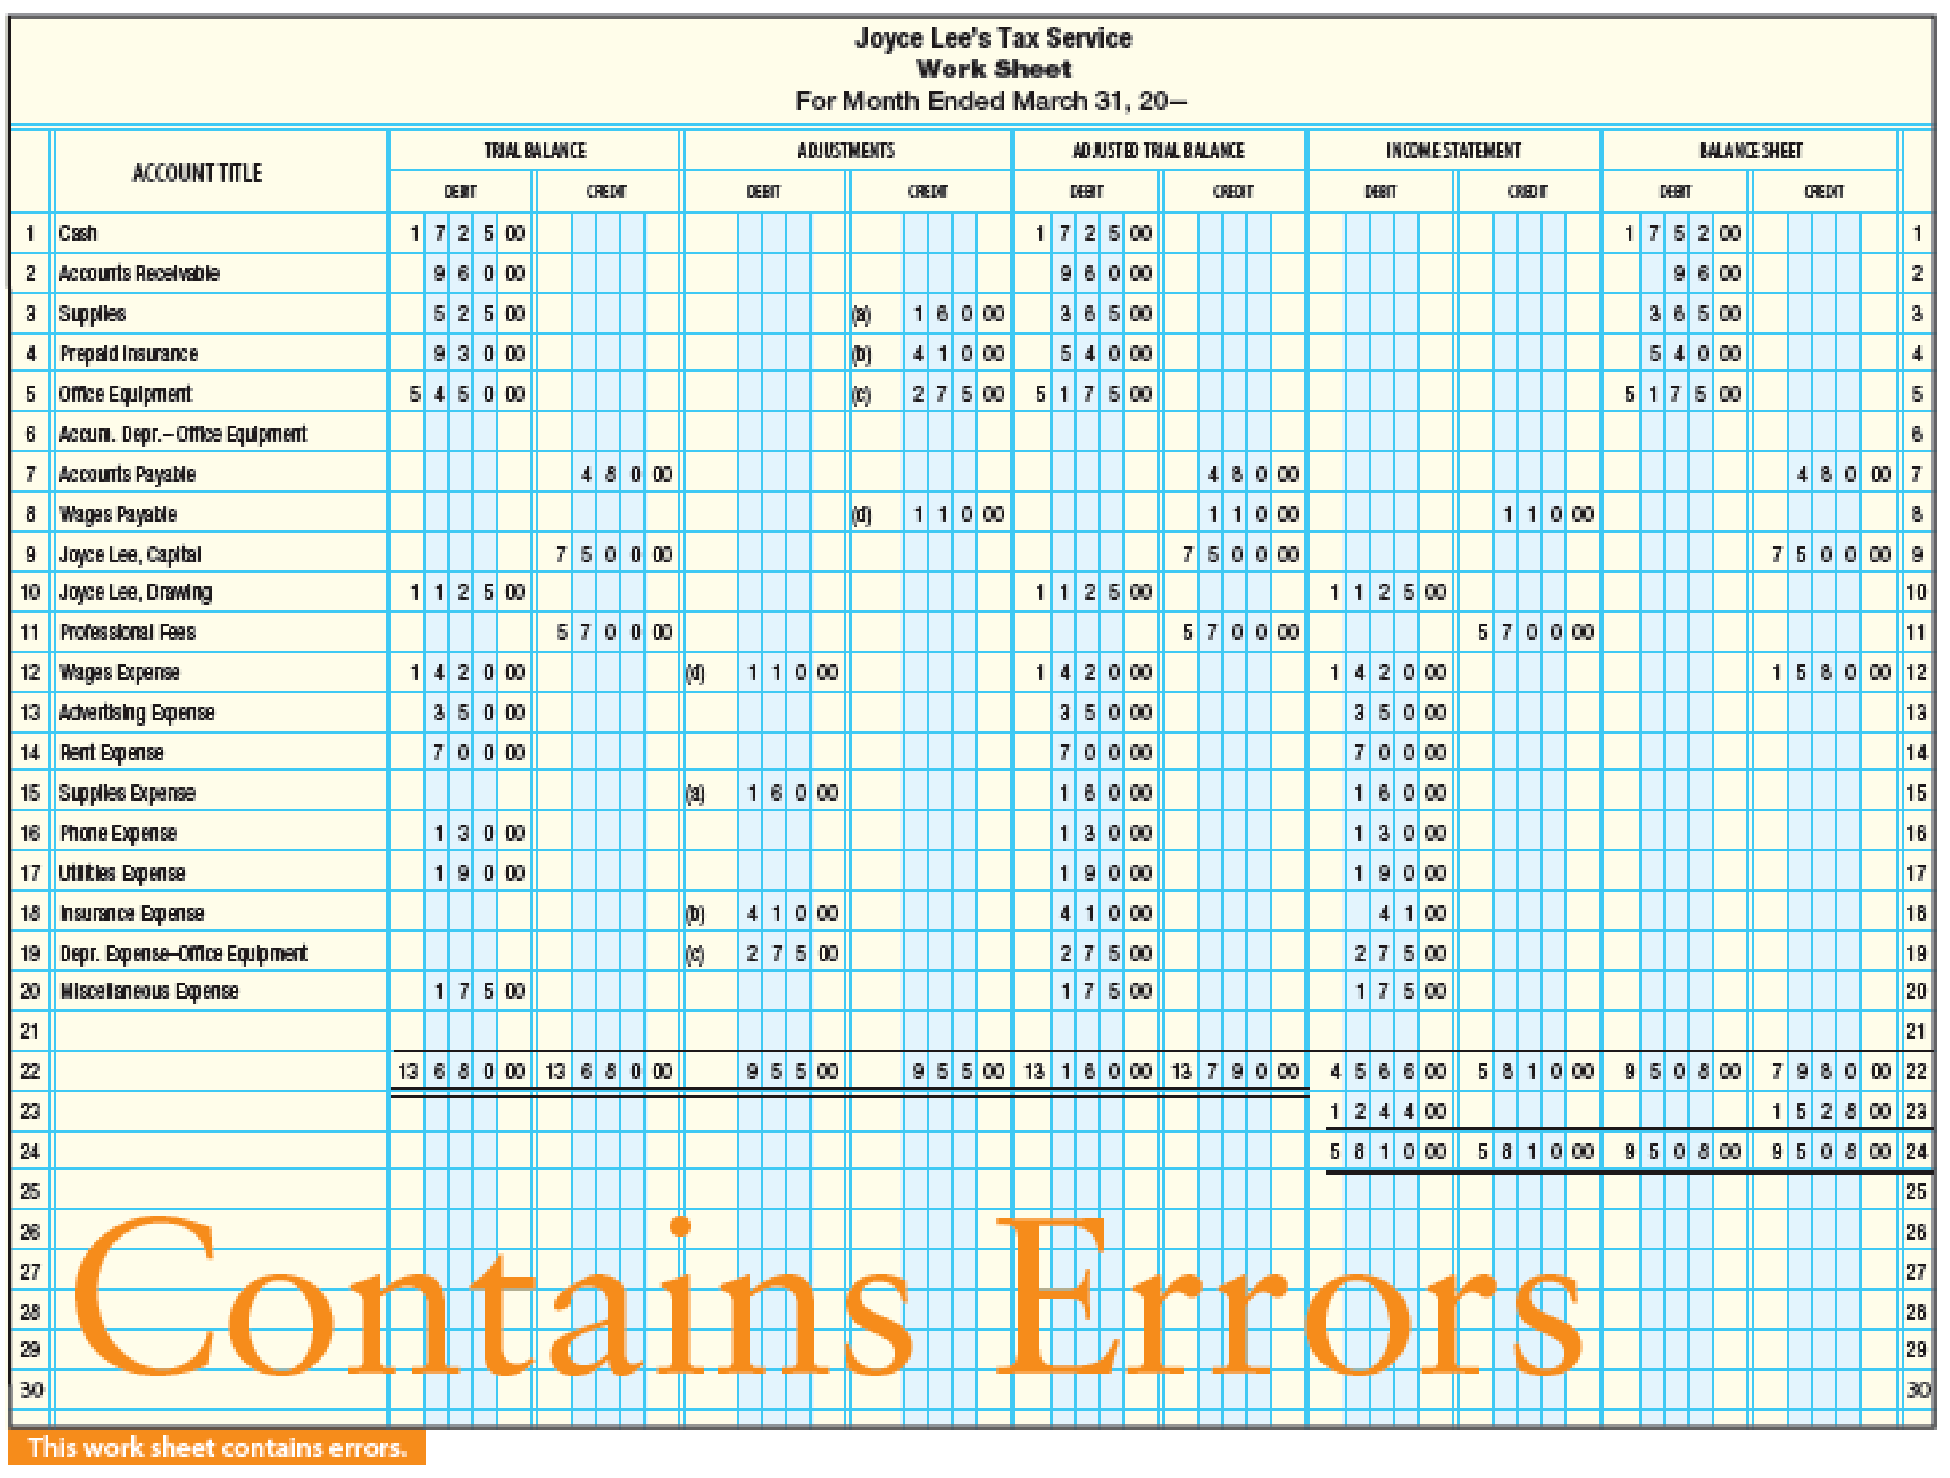 Correcting Work Sheet With Errors A Beginning Accounting